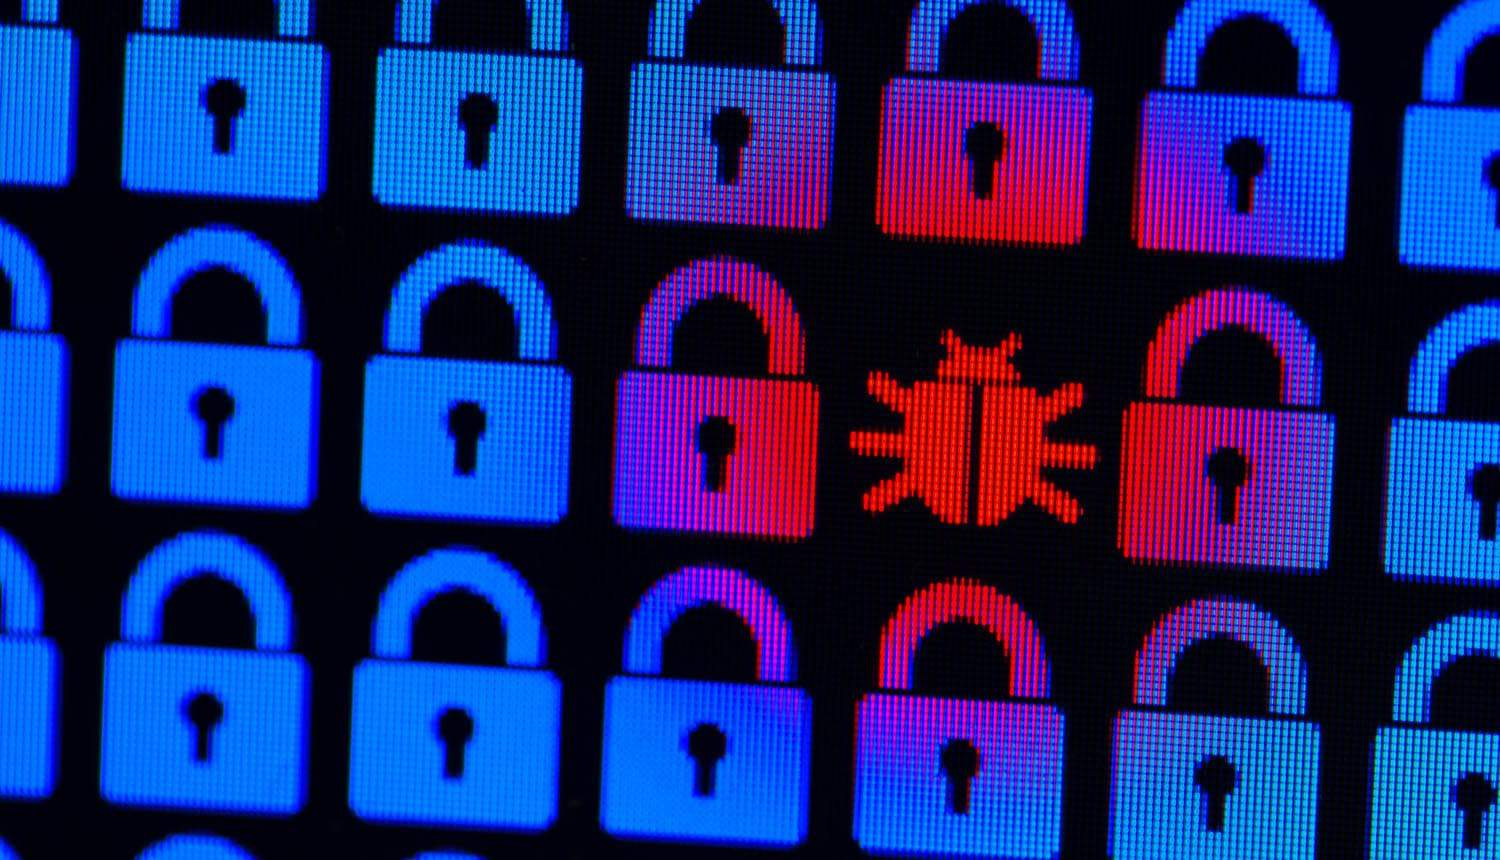 Blue pixel locks and red Bug on a black background showing impact of healthcare sector supply chain attacks involving 'Kwampirs' malware